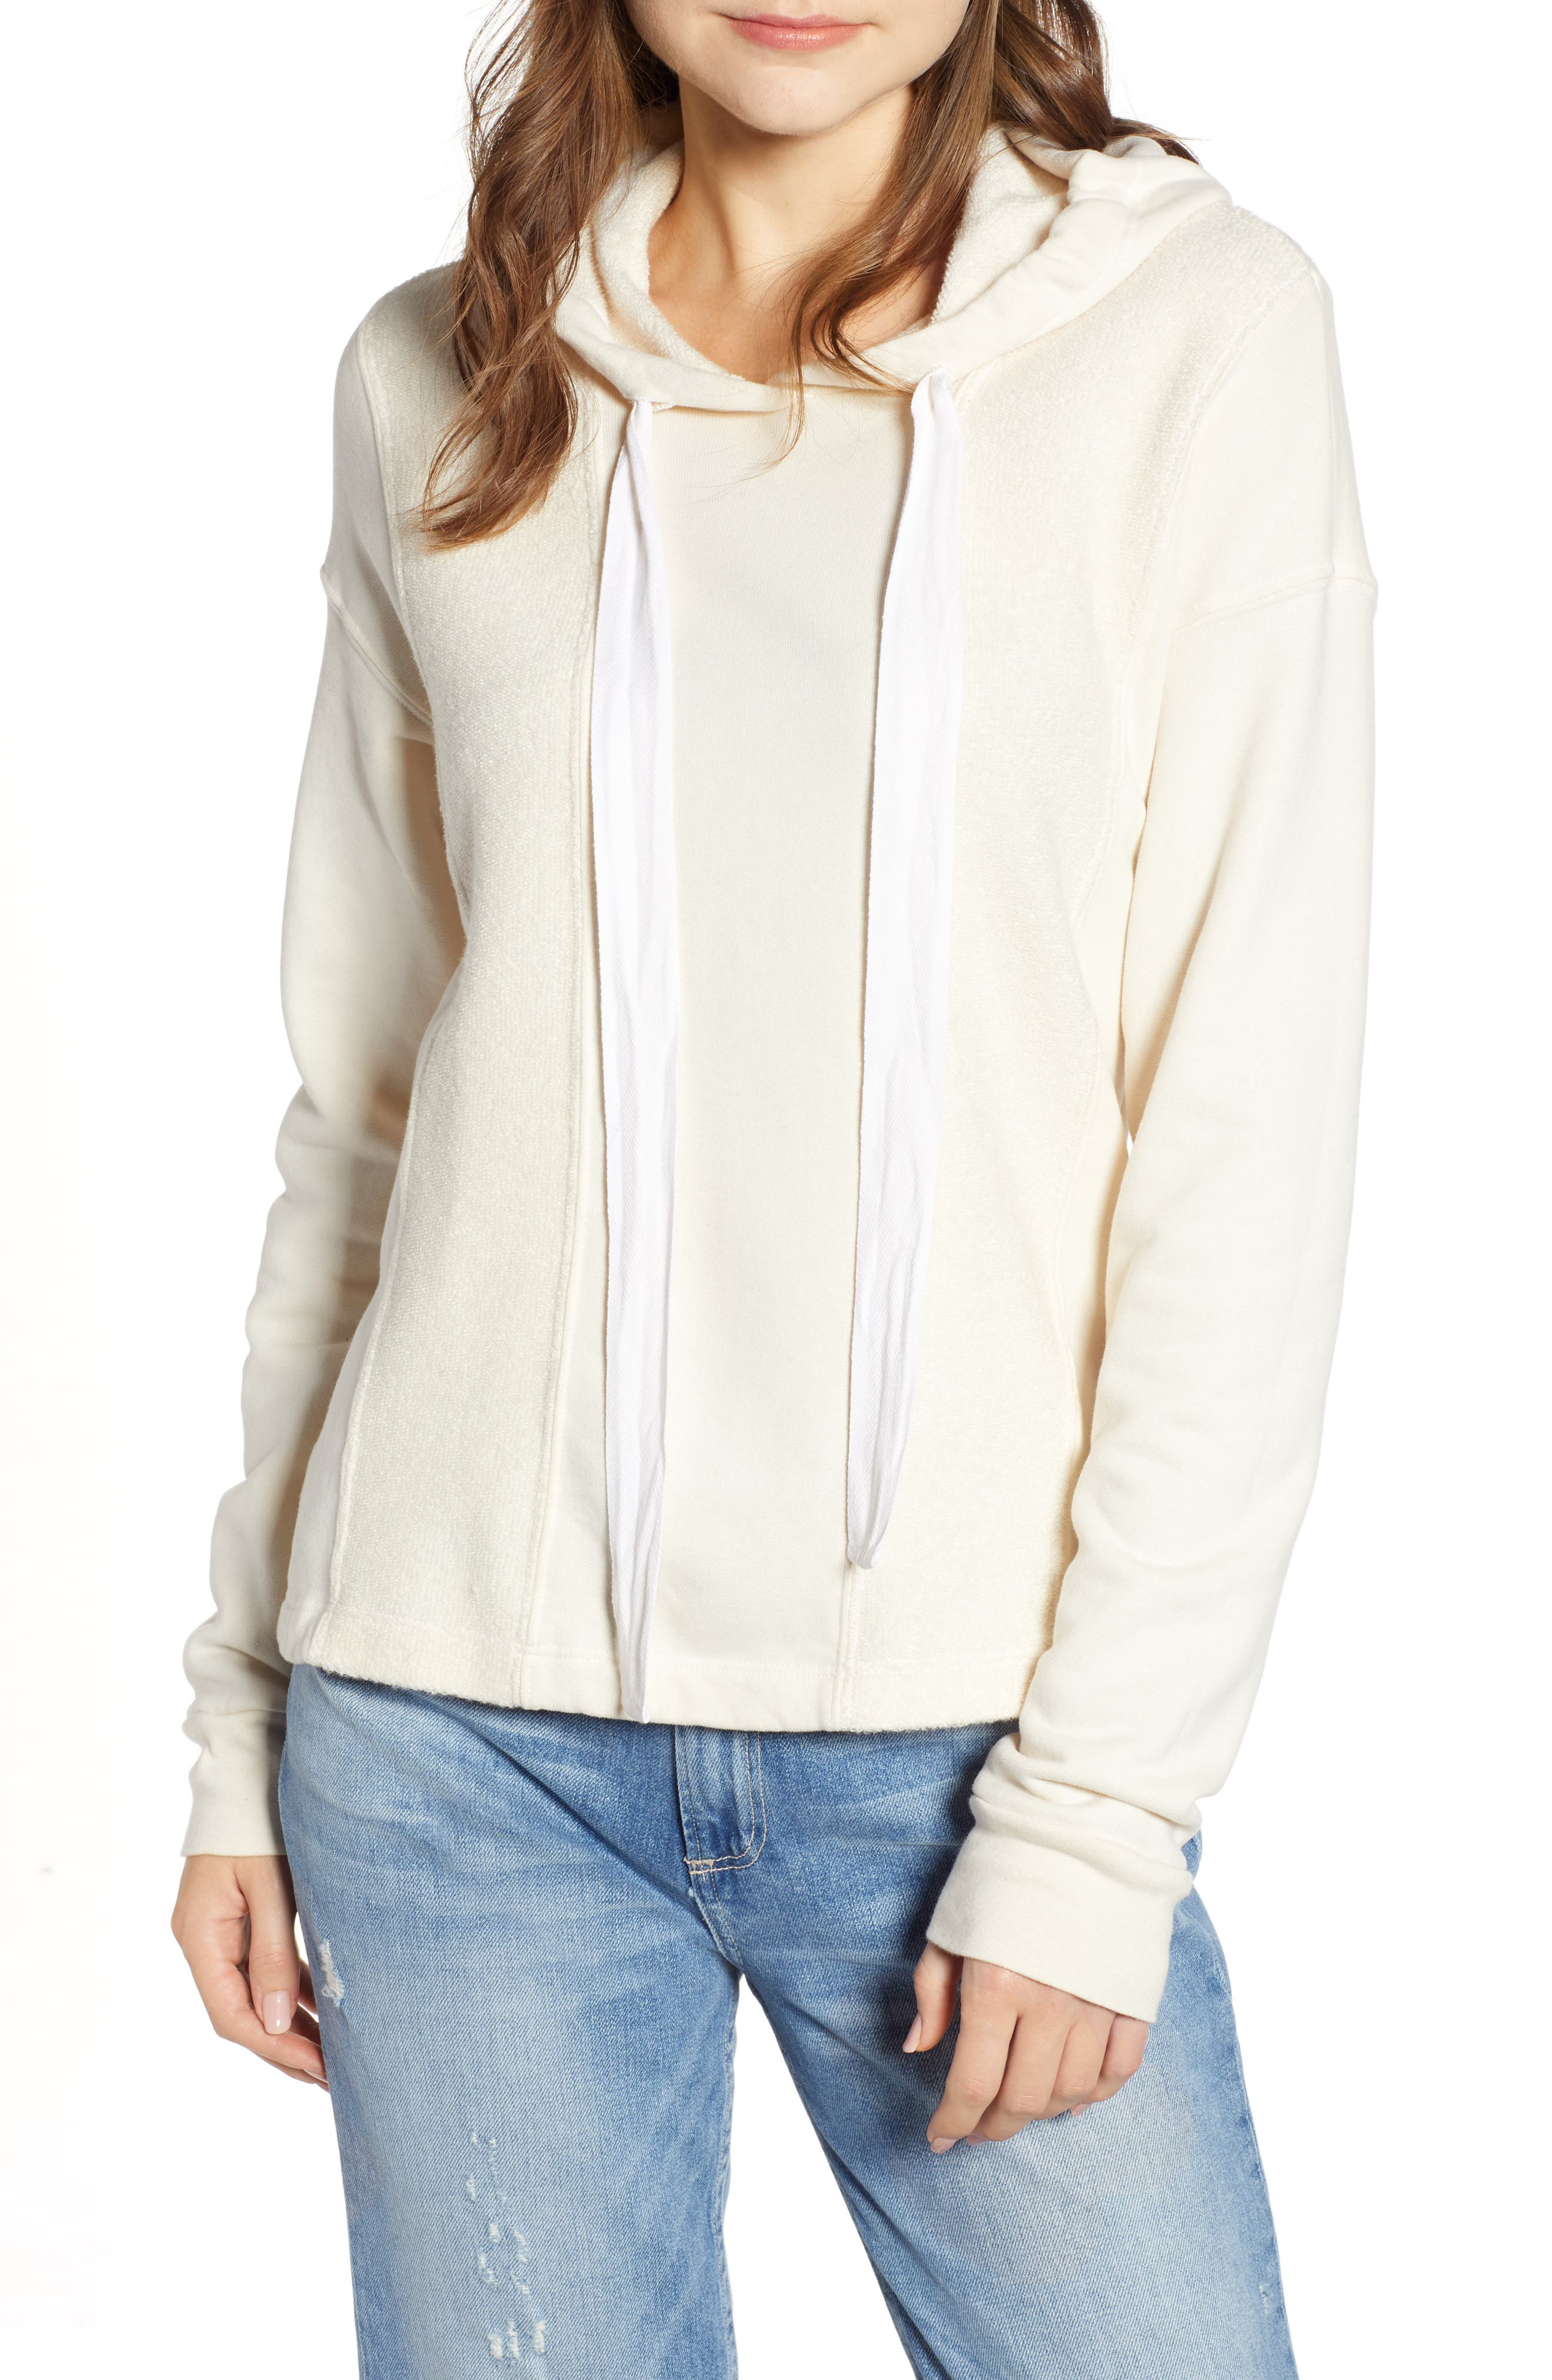 French Terry Hoodie,                             Main thumbnail 1, color,                             CREAM